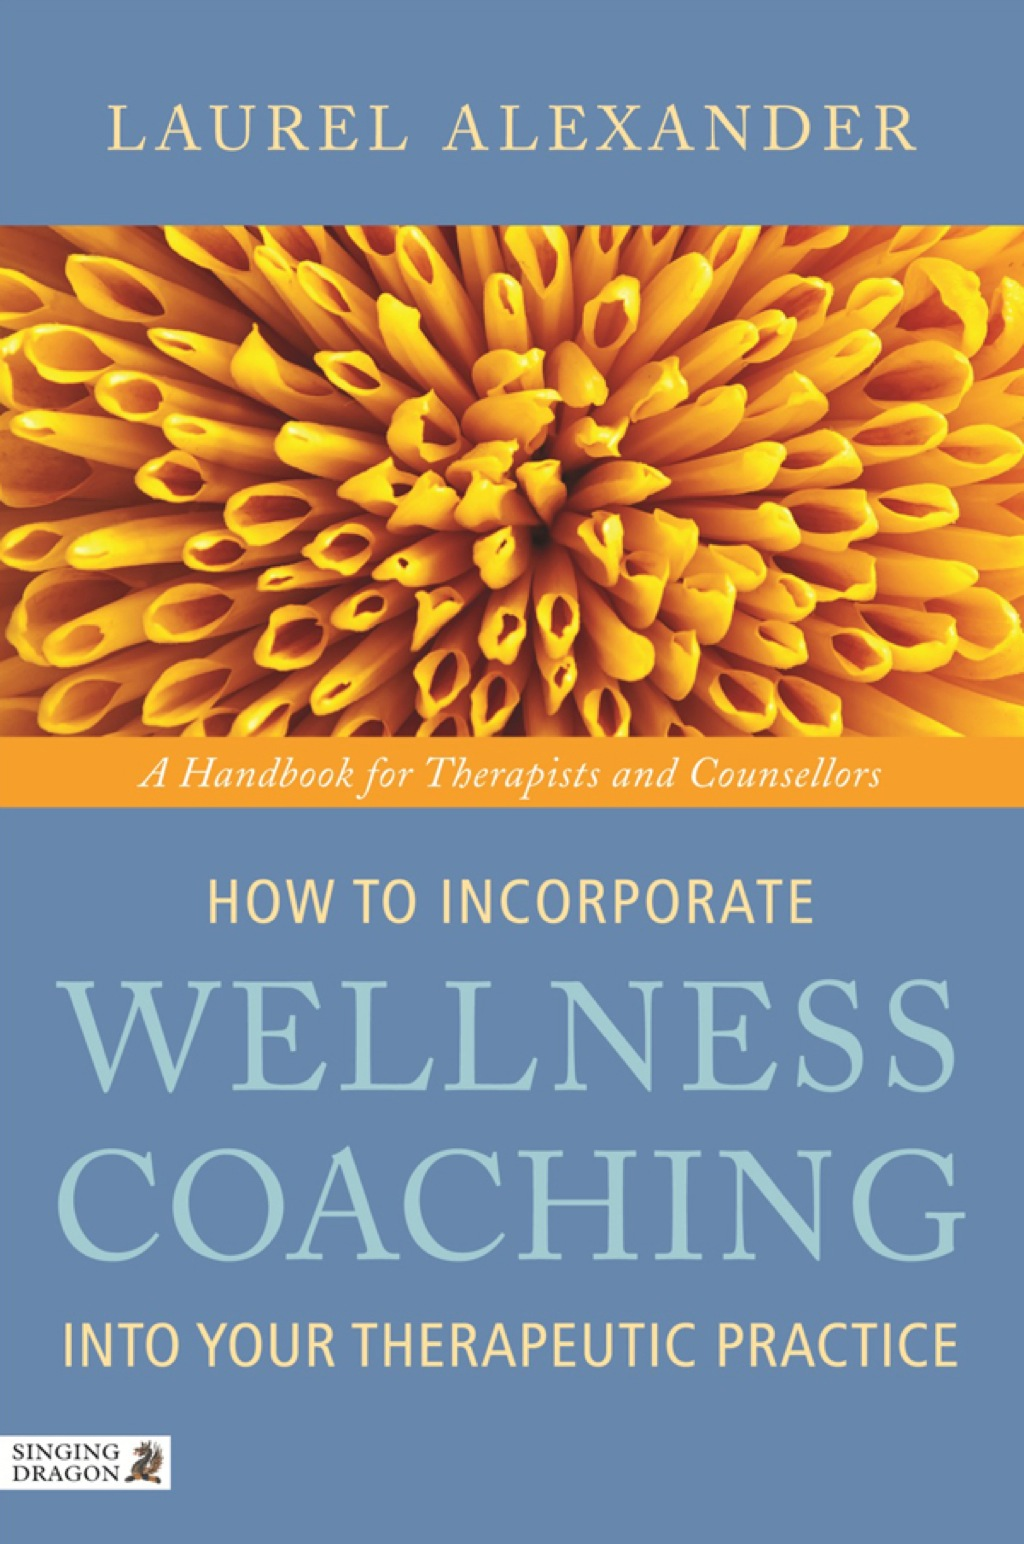 How to Incorporate Wellness Coaching into Your Therapeutic Practice (ebook) eBooks